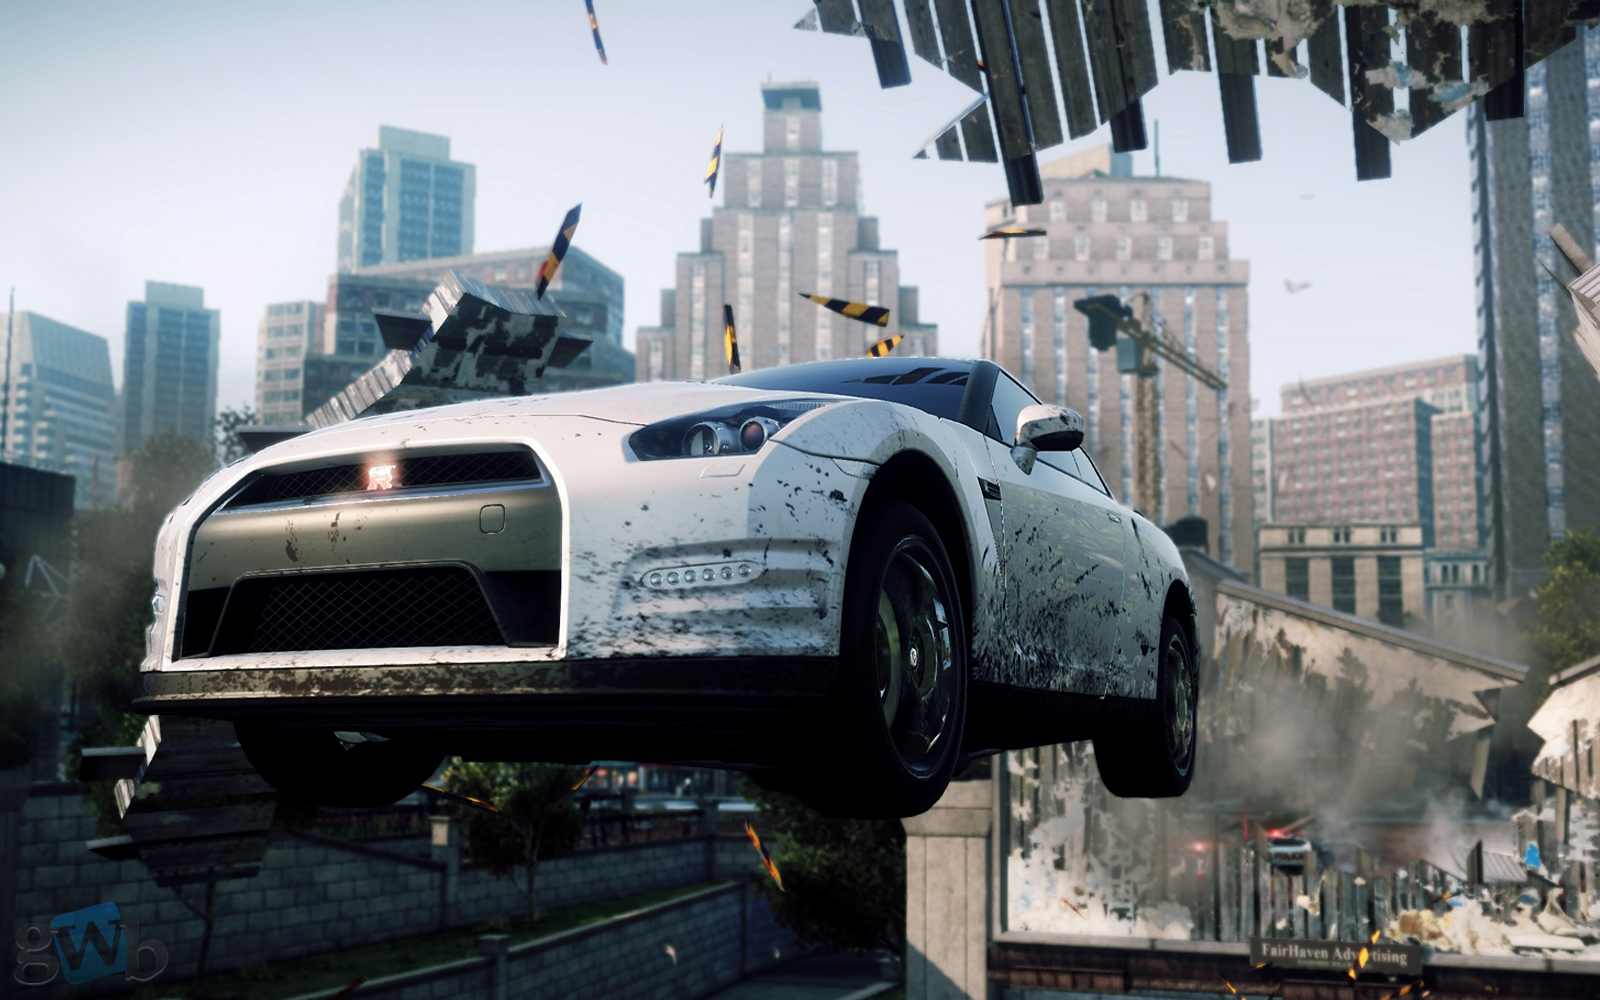 HD WALLPAPERS MANIA Need For Speed Most Wanted 2012 Hd Wallpapers 1600x1000